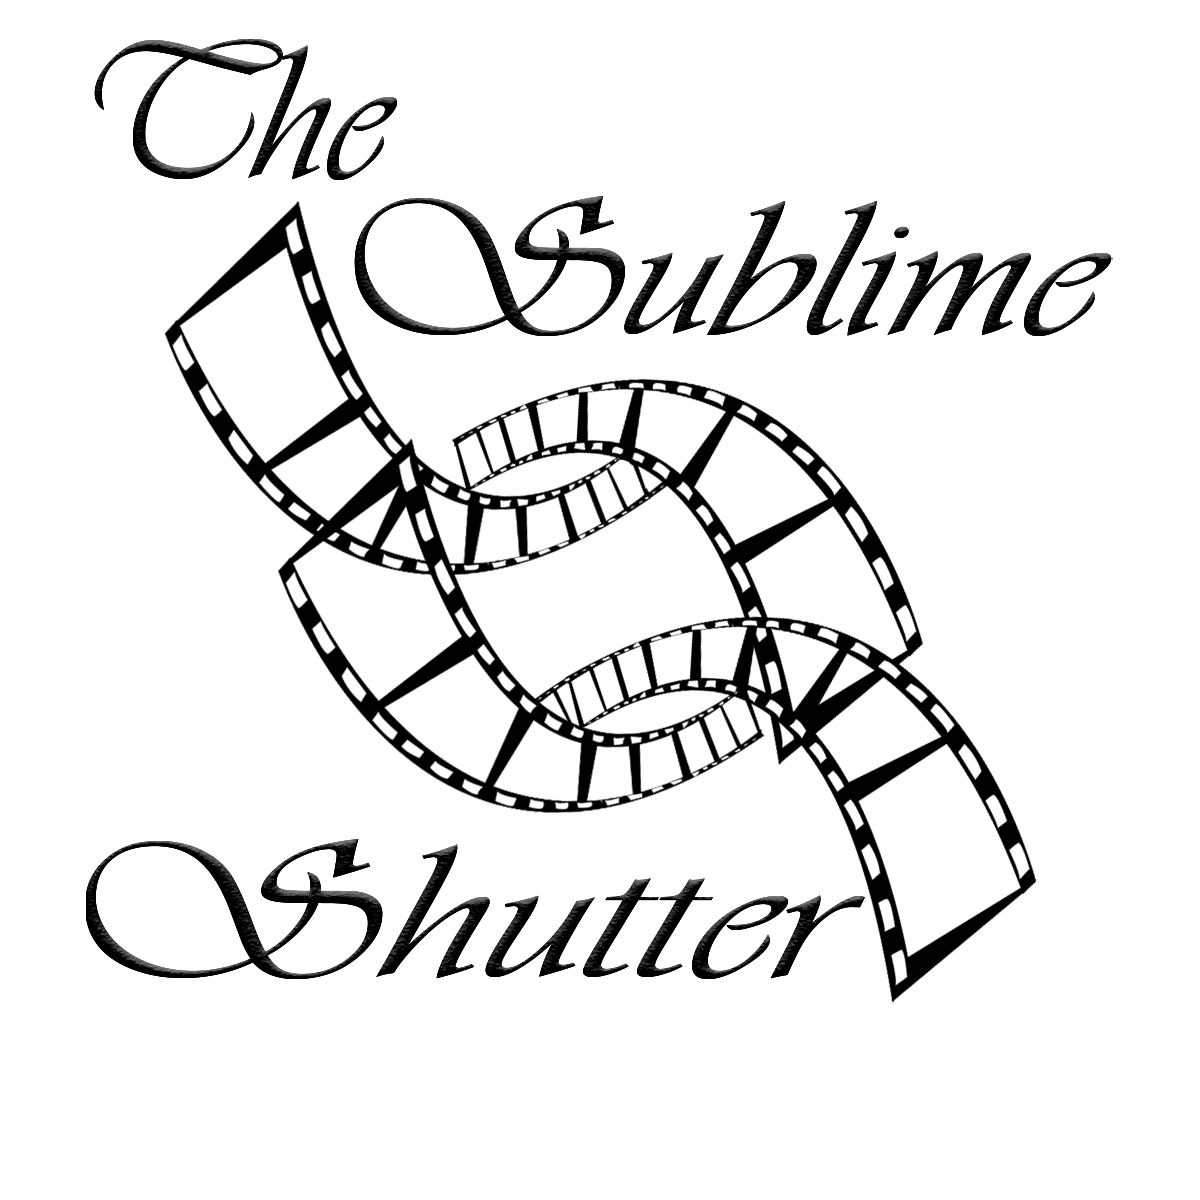 The shutter . Sublime drawing bad clip art freeuse download